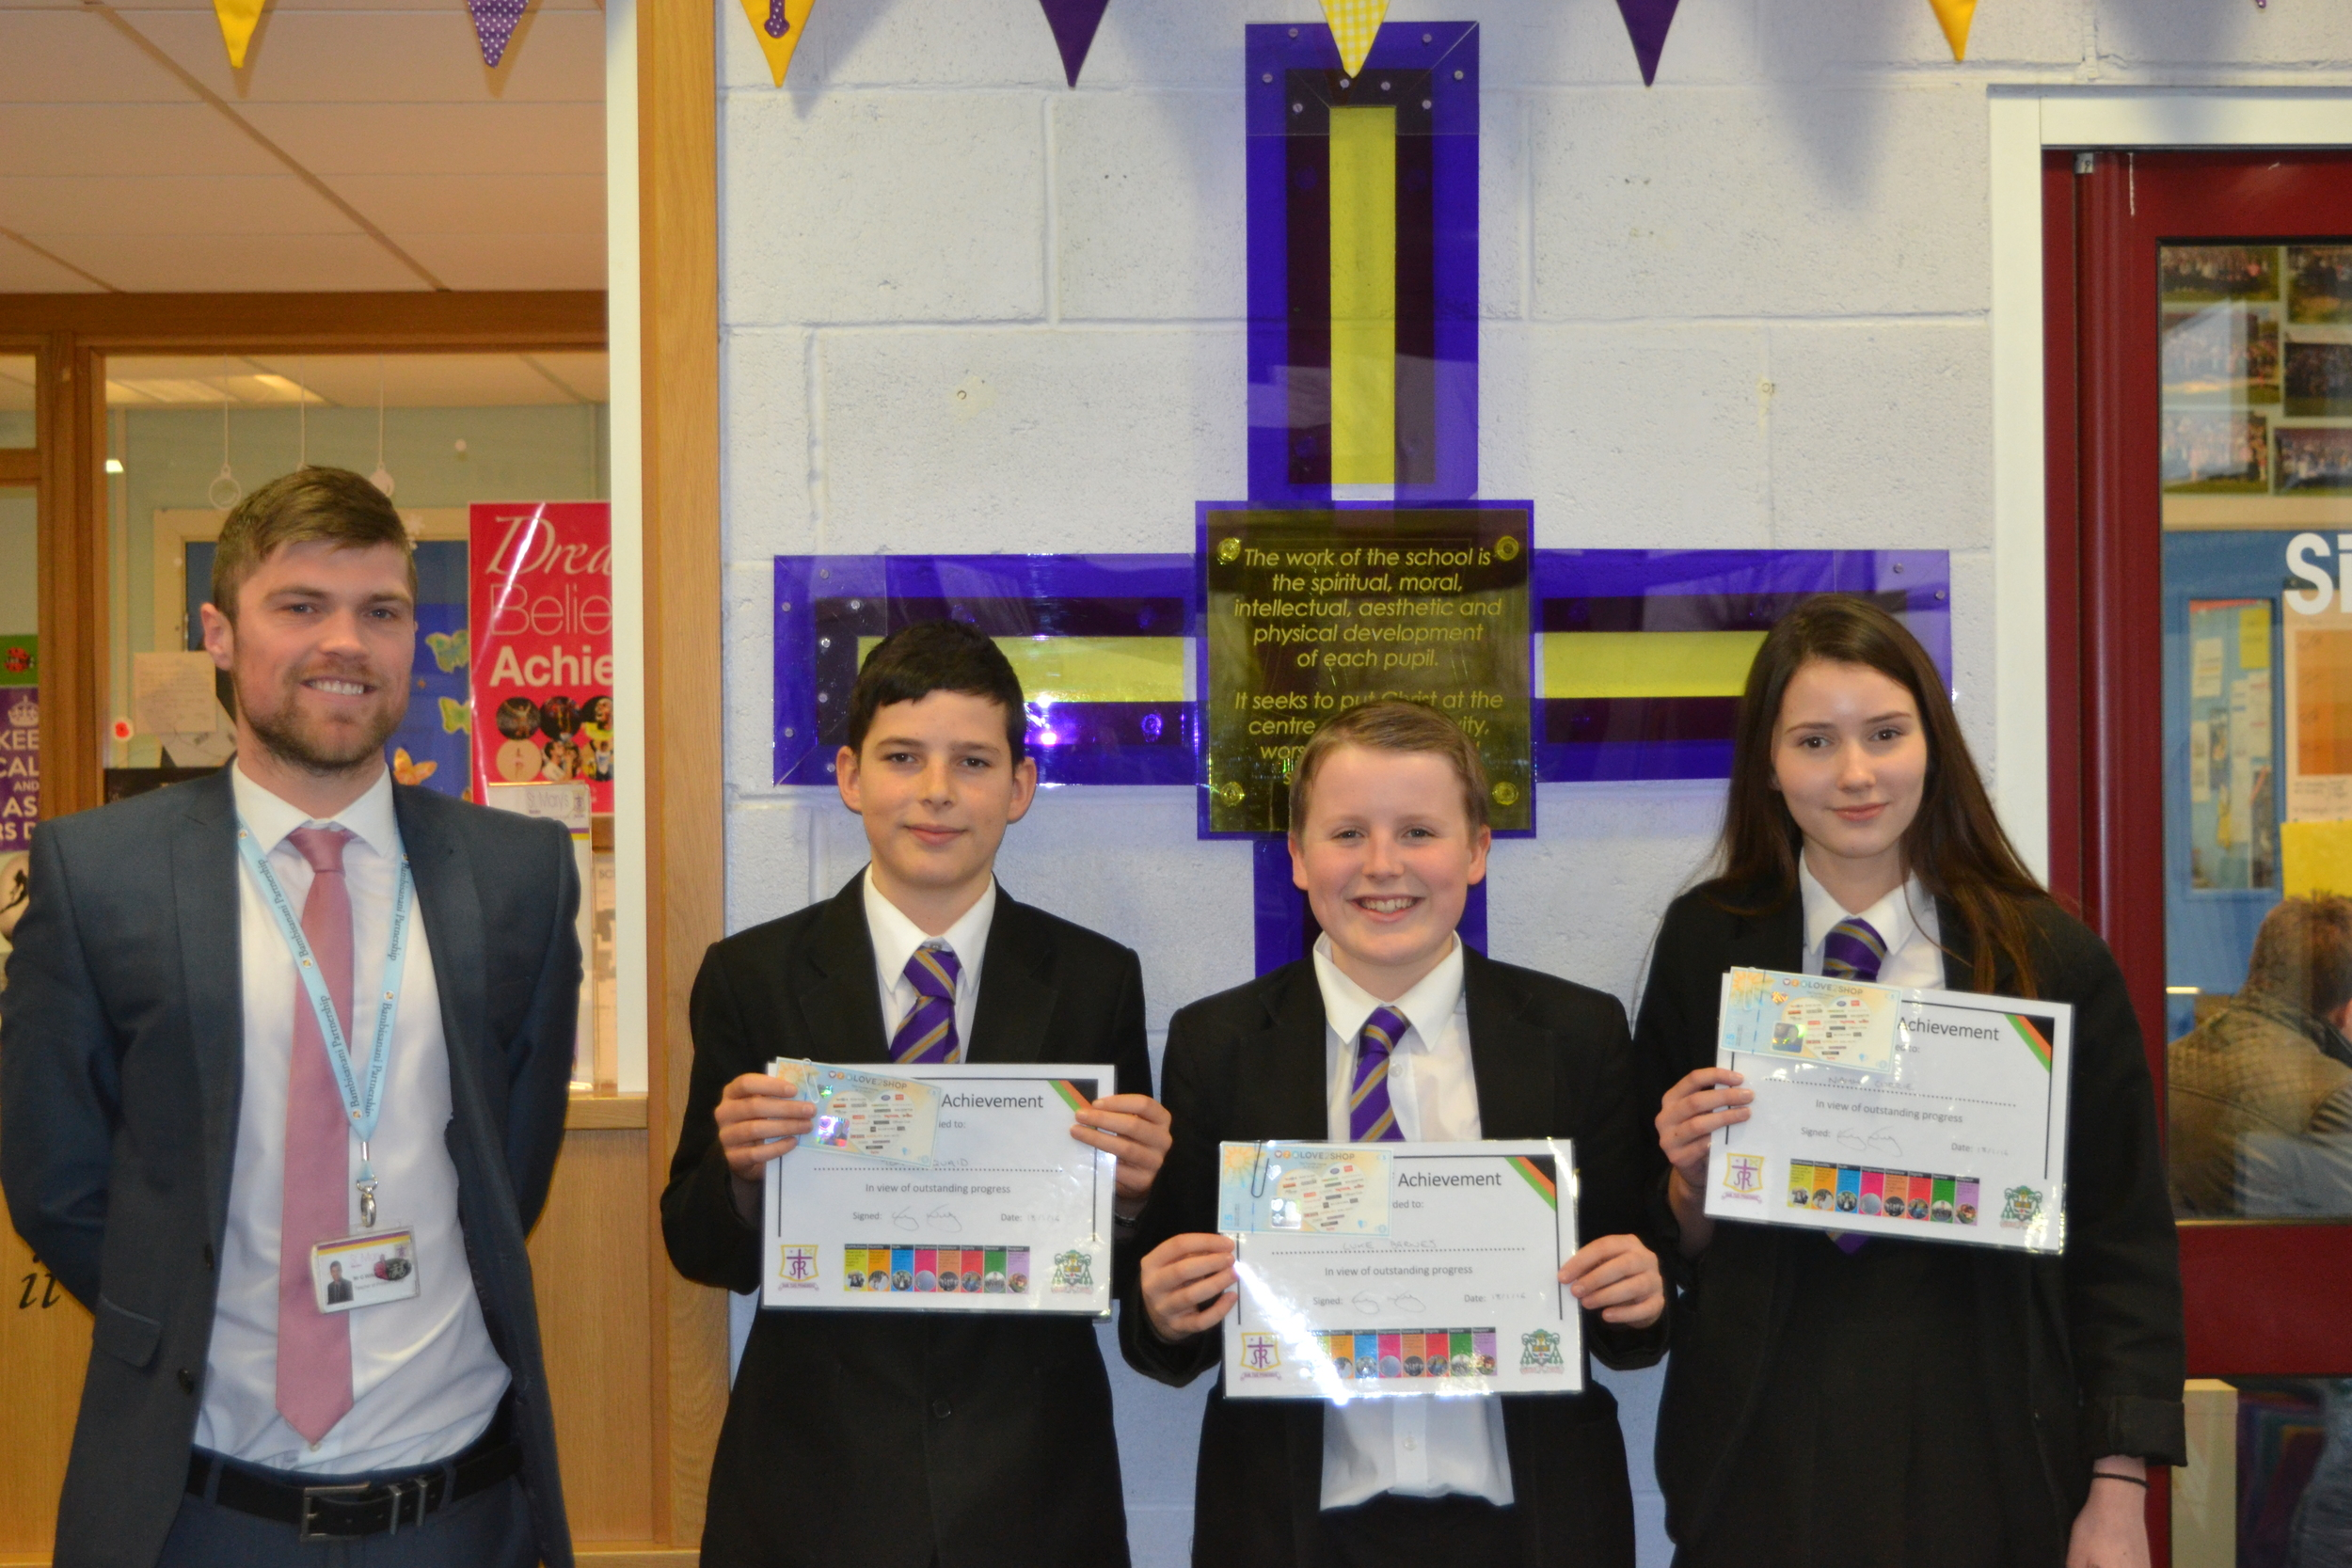 Luke Barnes 10F, Tom McQuaid 10D and Niamh Currie 10C were presented with the Award for Progress from Year 9 to Year 10.